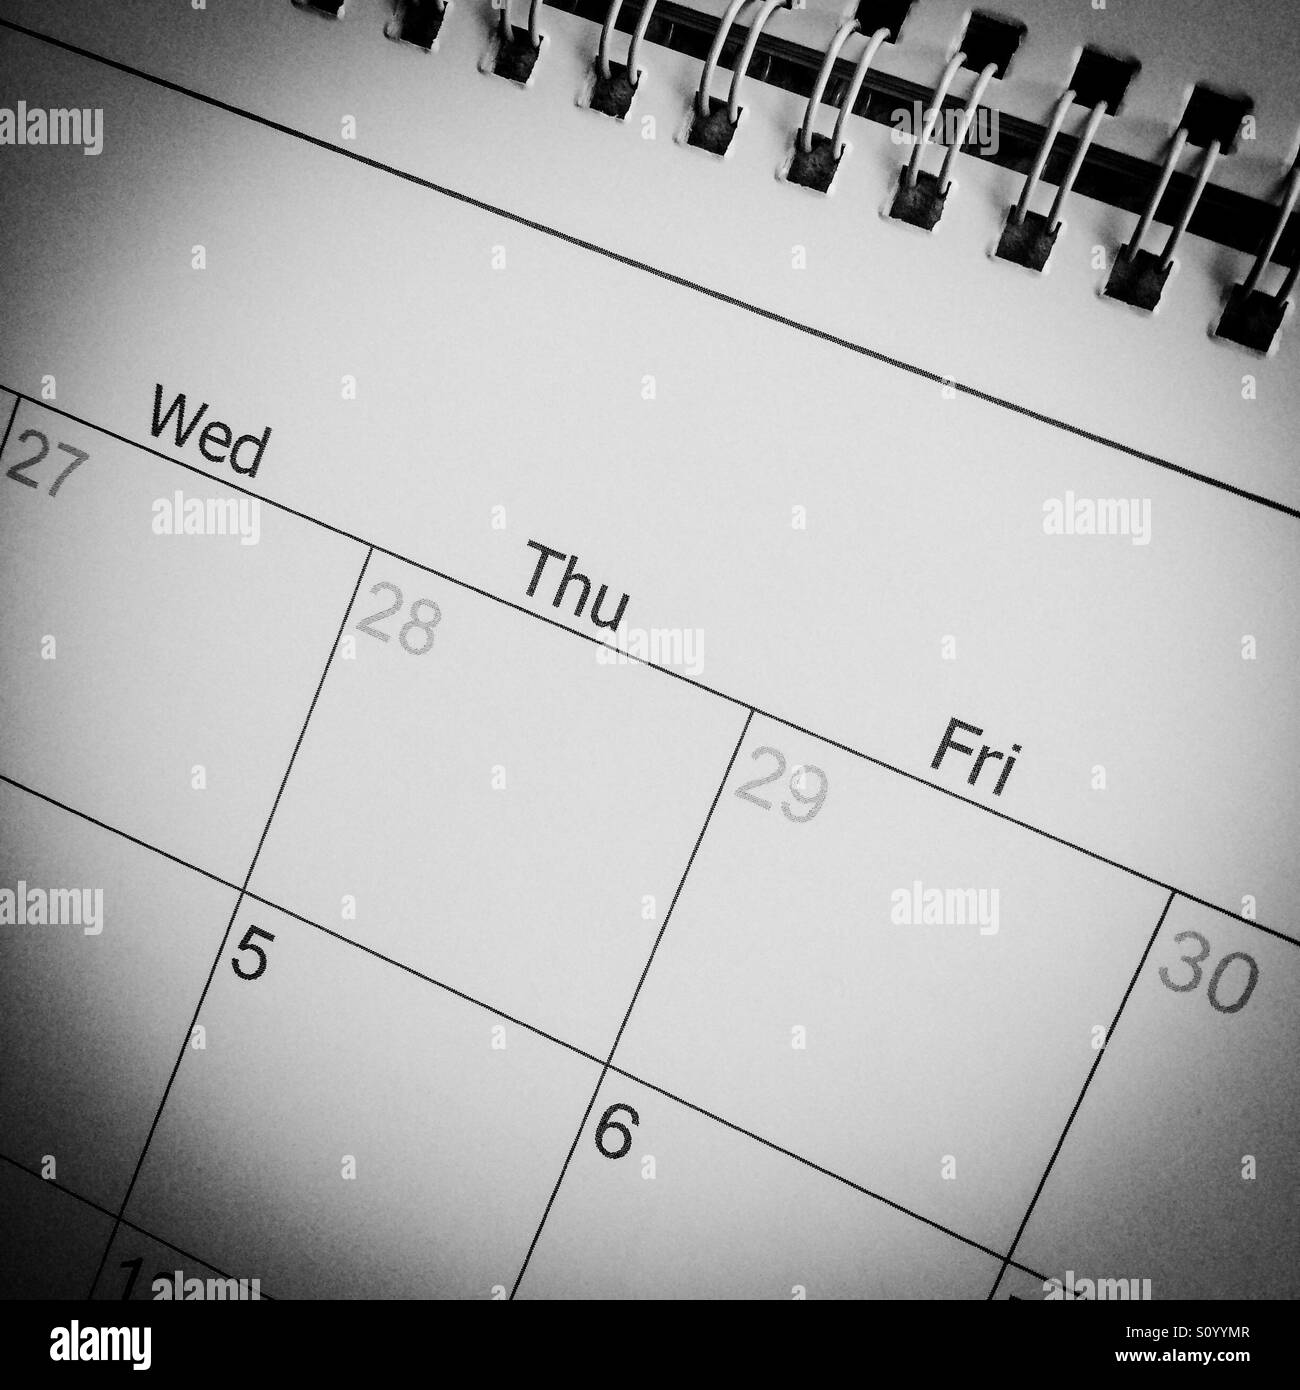 Close up view of a calendar with days and dates visible - Stock Image